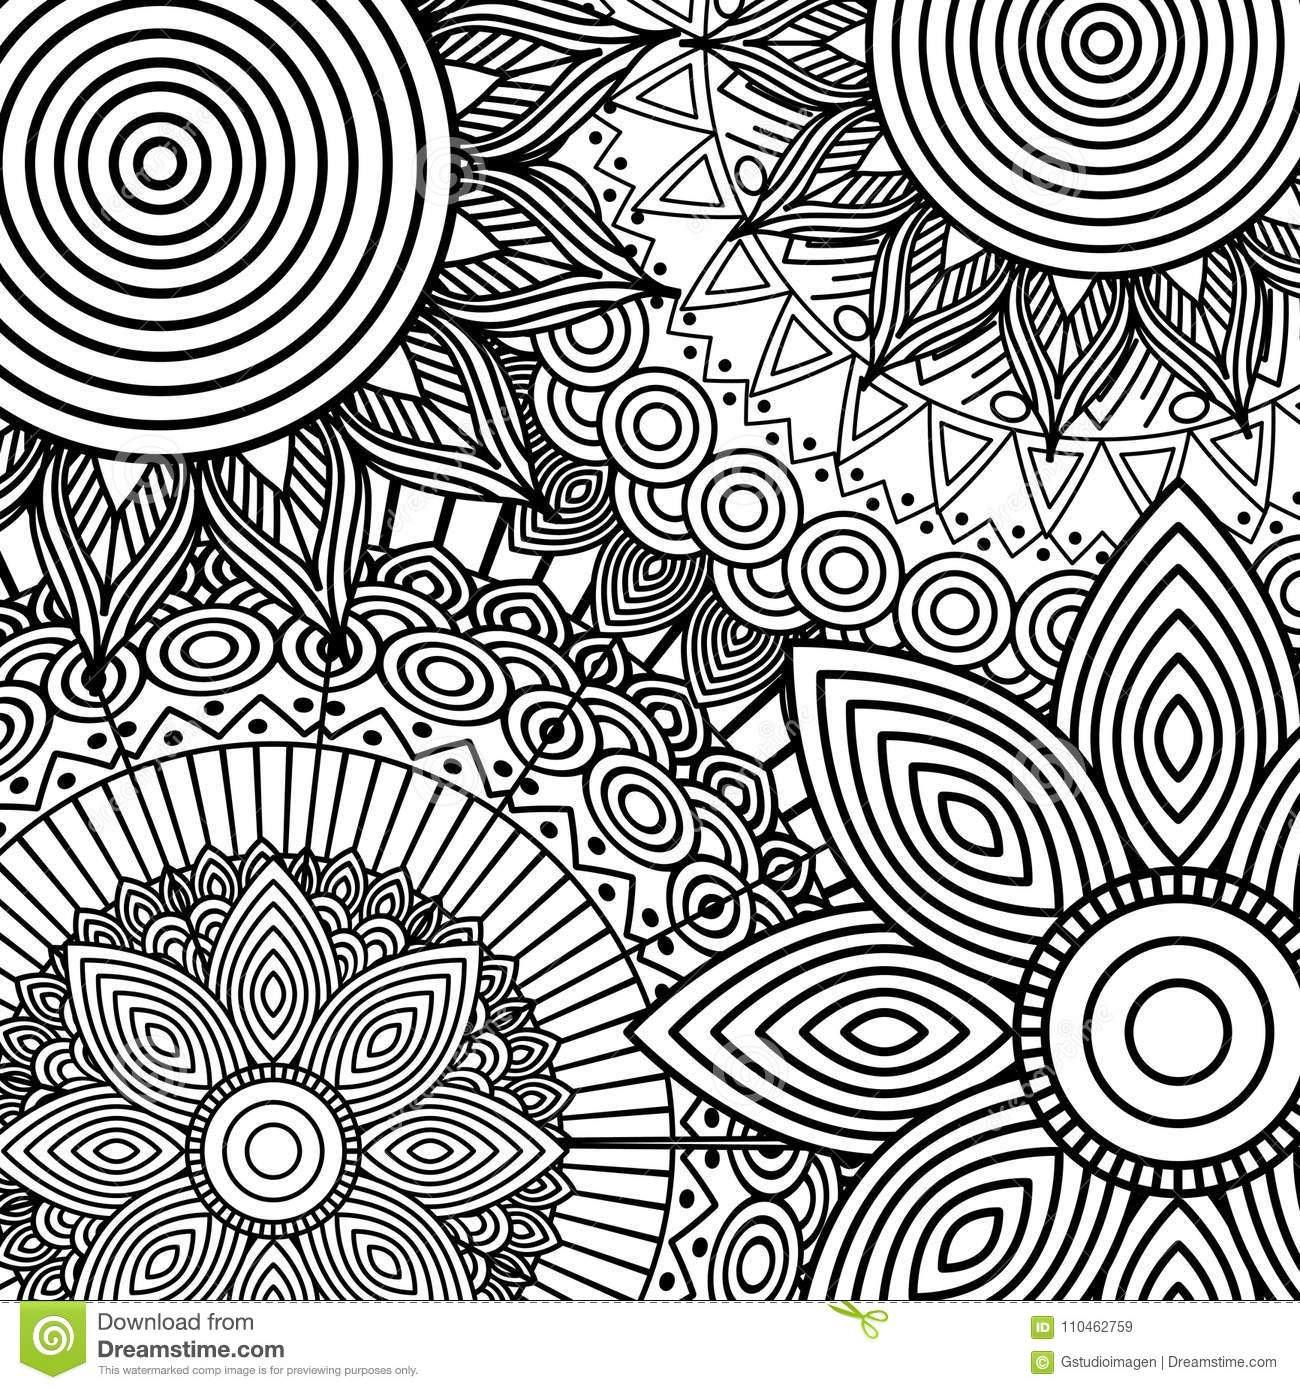 Tribal Ethnic Floral Mandala Sketch Pattern For Coloring Page Stock